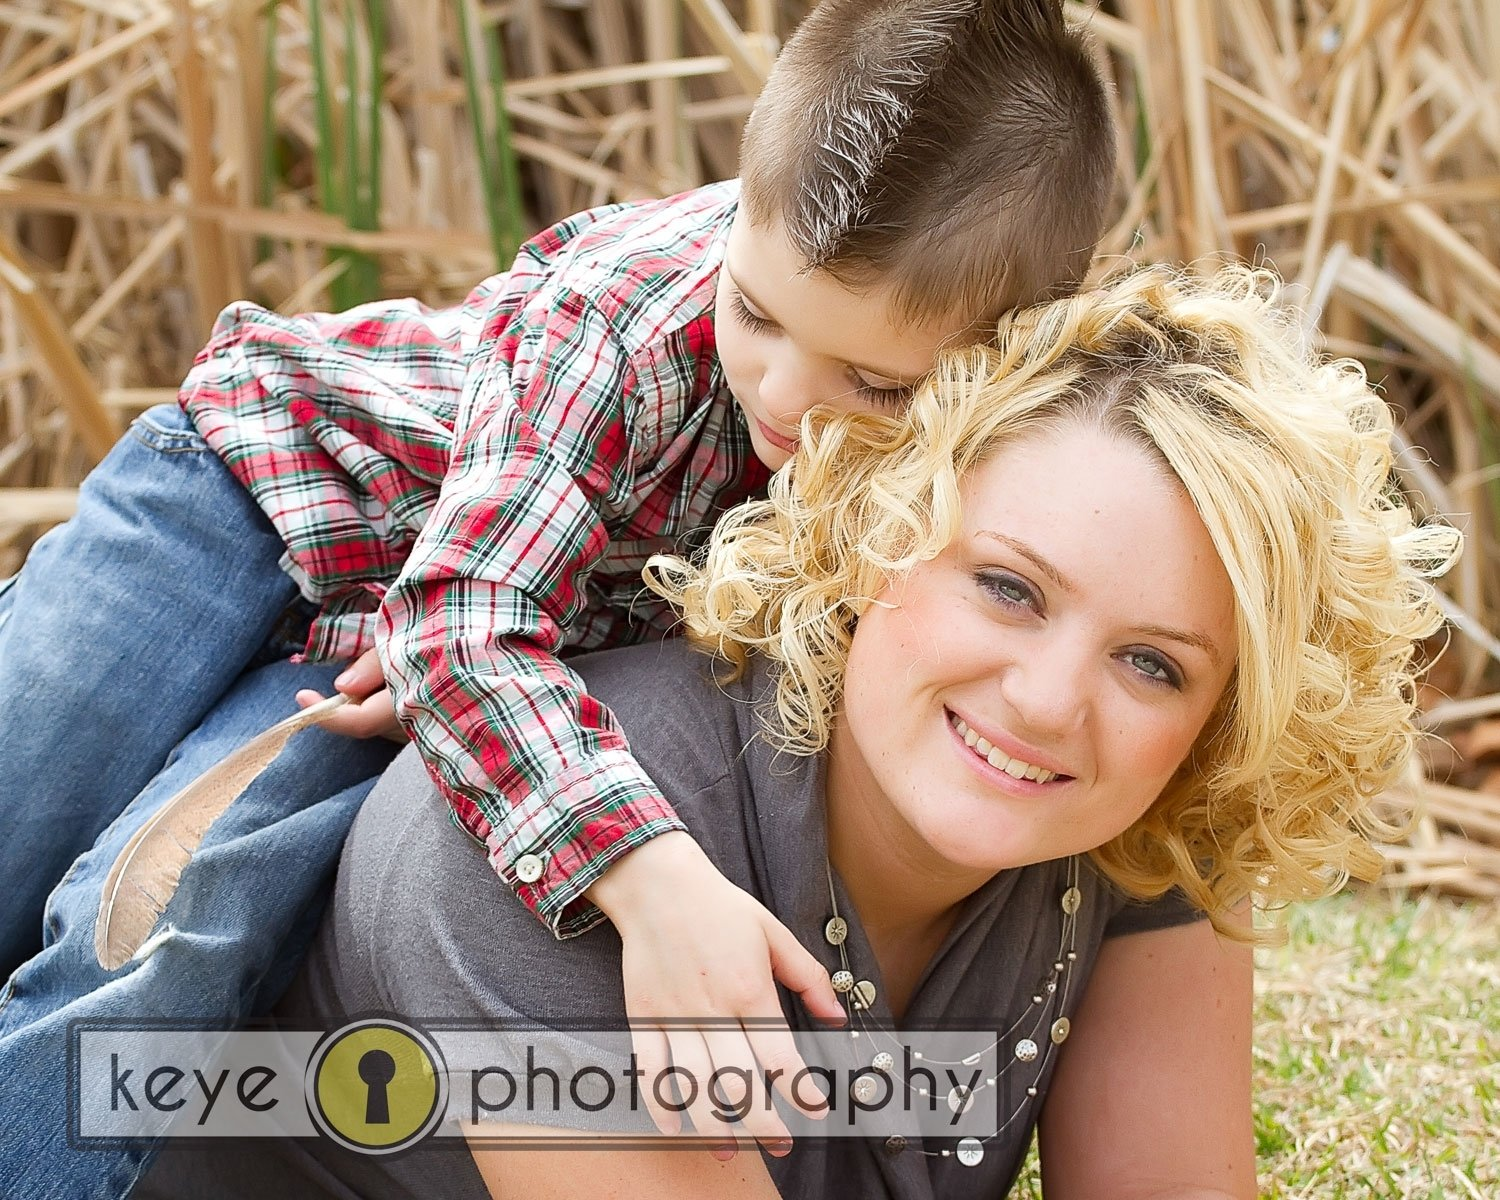 10 Gorgeous Mother And Son Photography Ideas mother and son photography ideas mother and son dev and i 2021